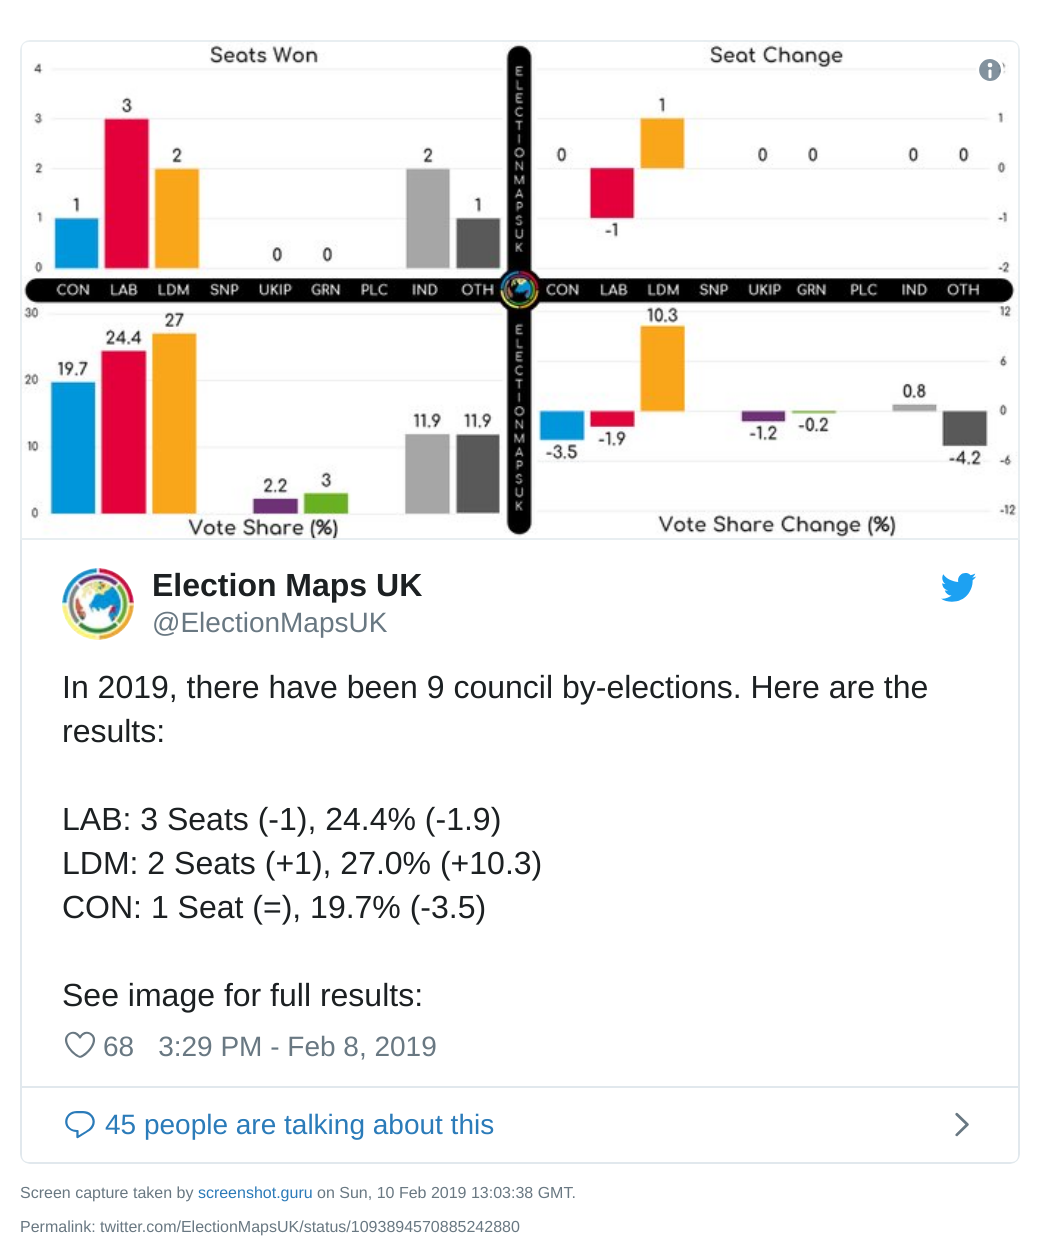 Council by-election results so far in 2019 - as of 8 February